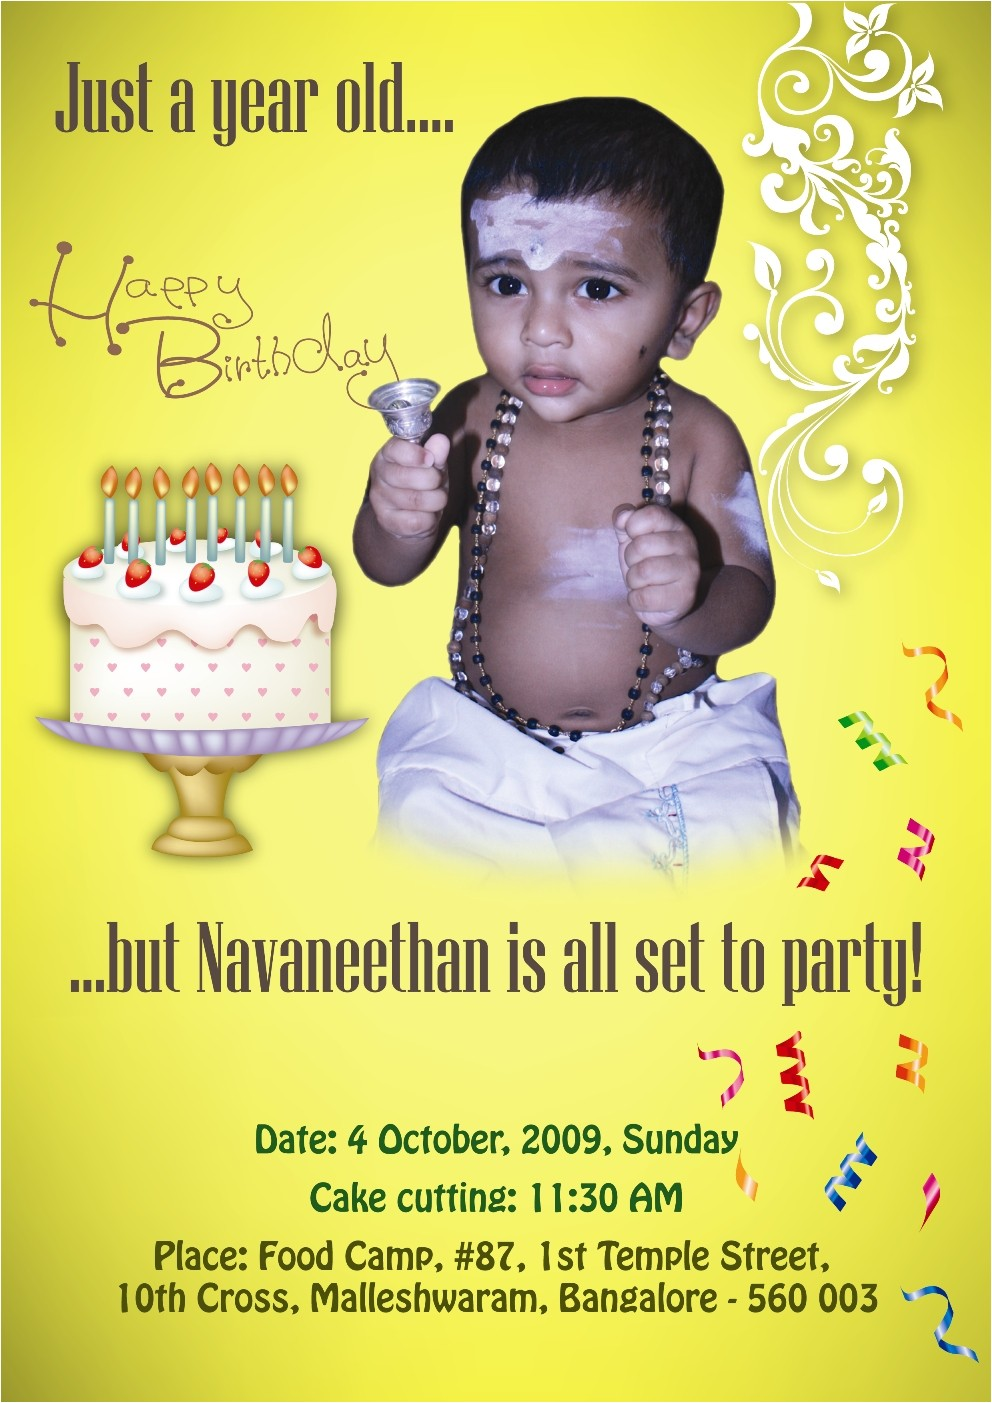 My son First Birthday Invitation Invitation by Bhanu Shankar at Coroflot Com